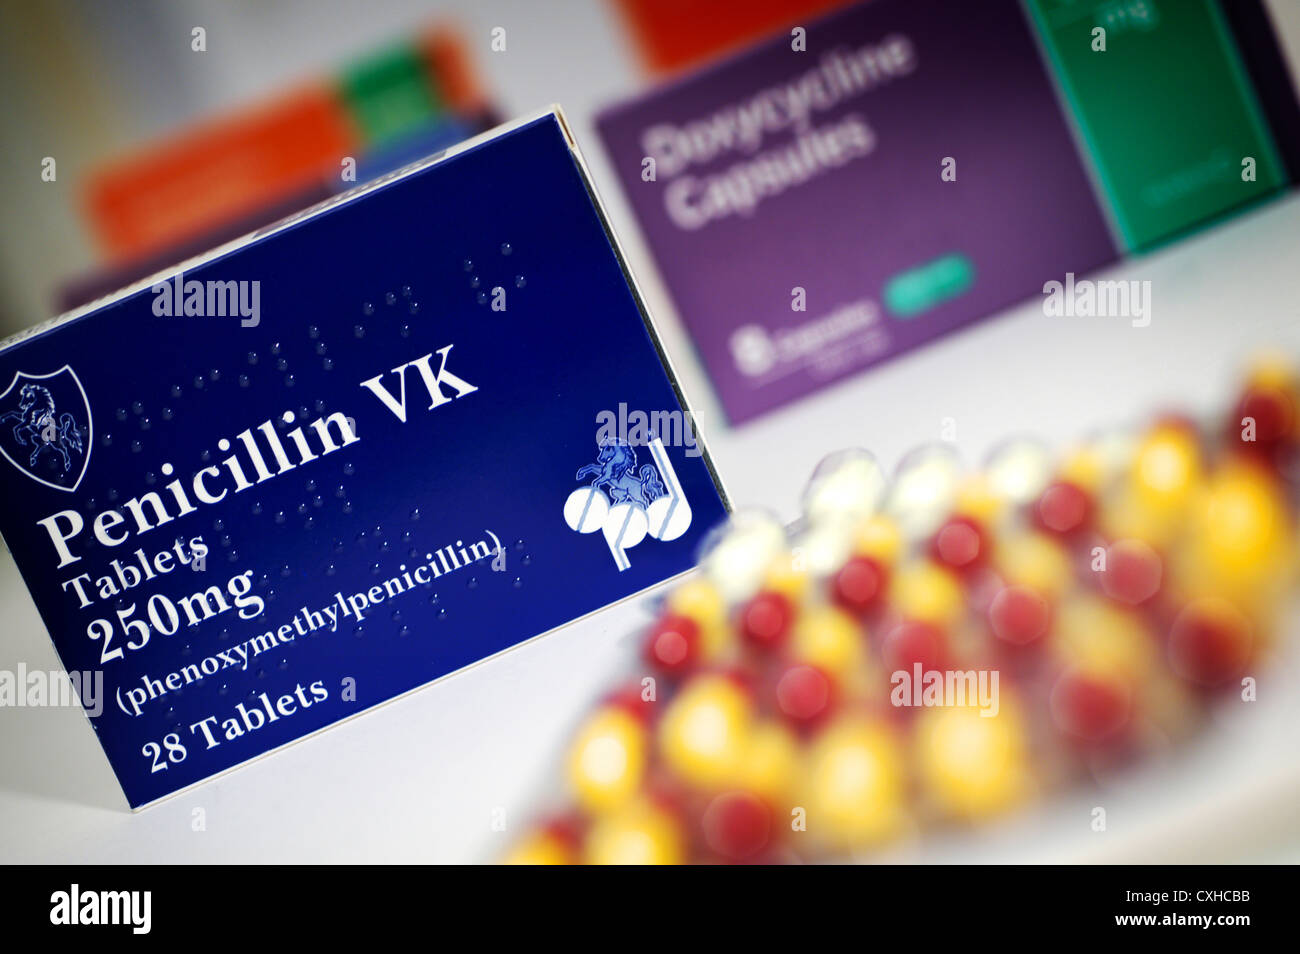 Penicillin VK Antibiotics tablets with box and blister ...